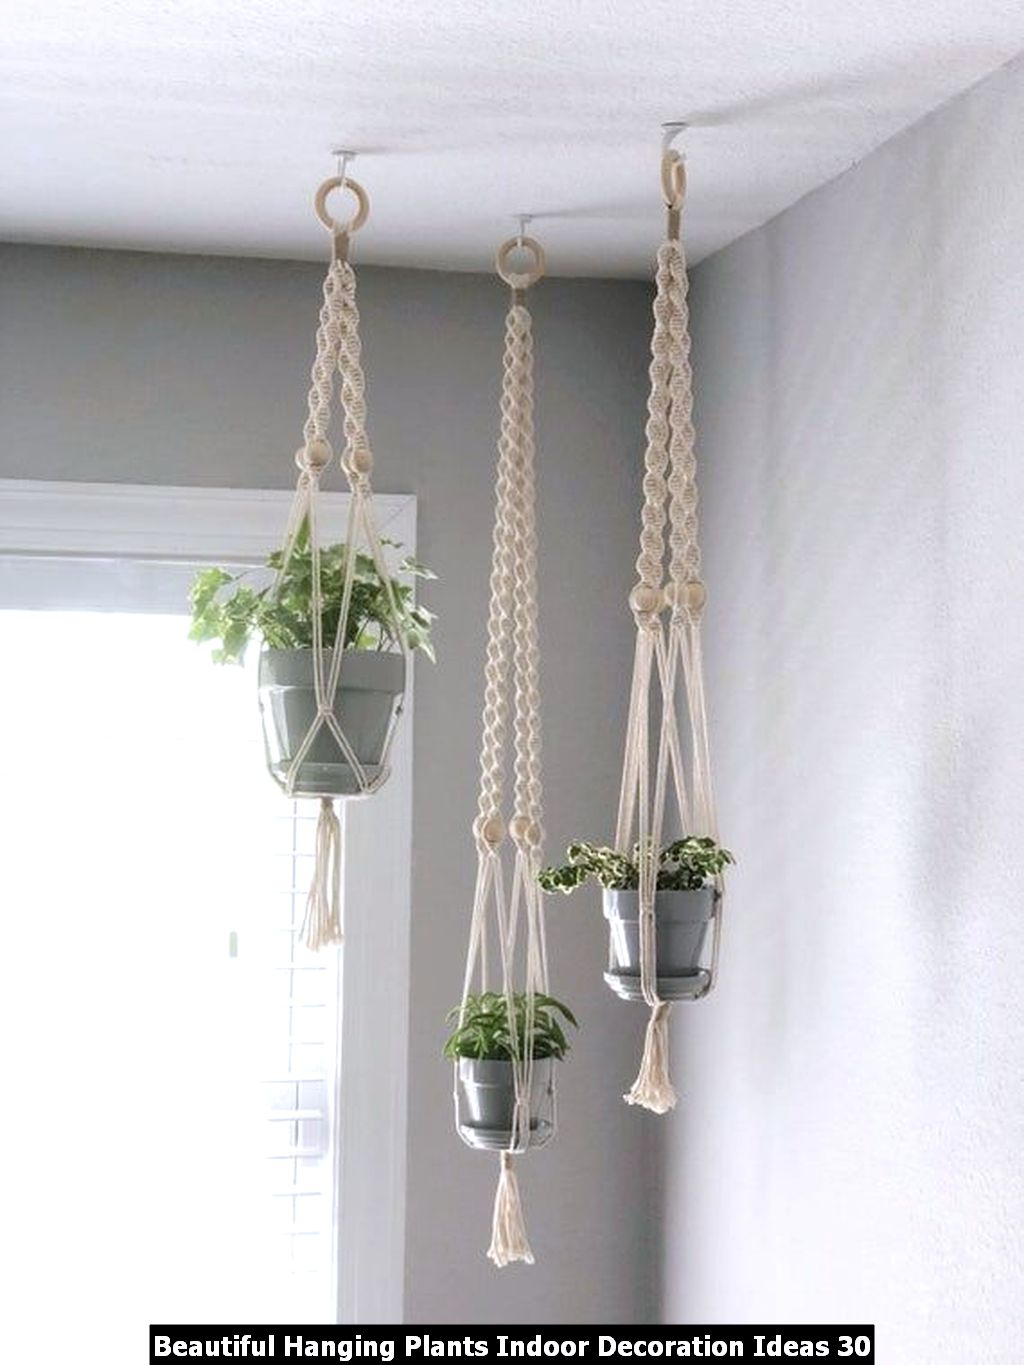 Beautiful Hanging Plants Indoor Decoration Ideas 30